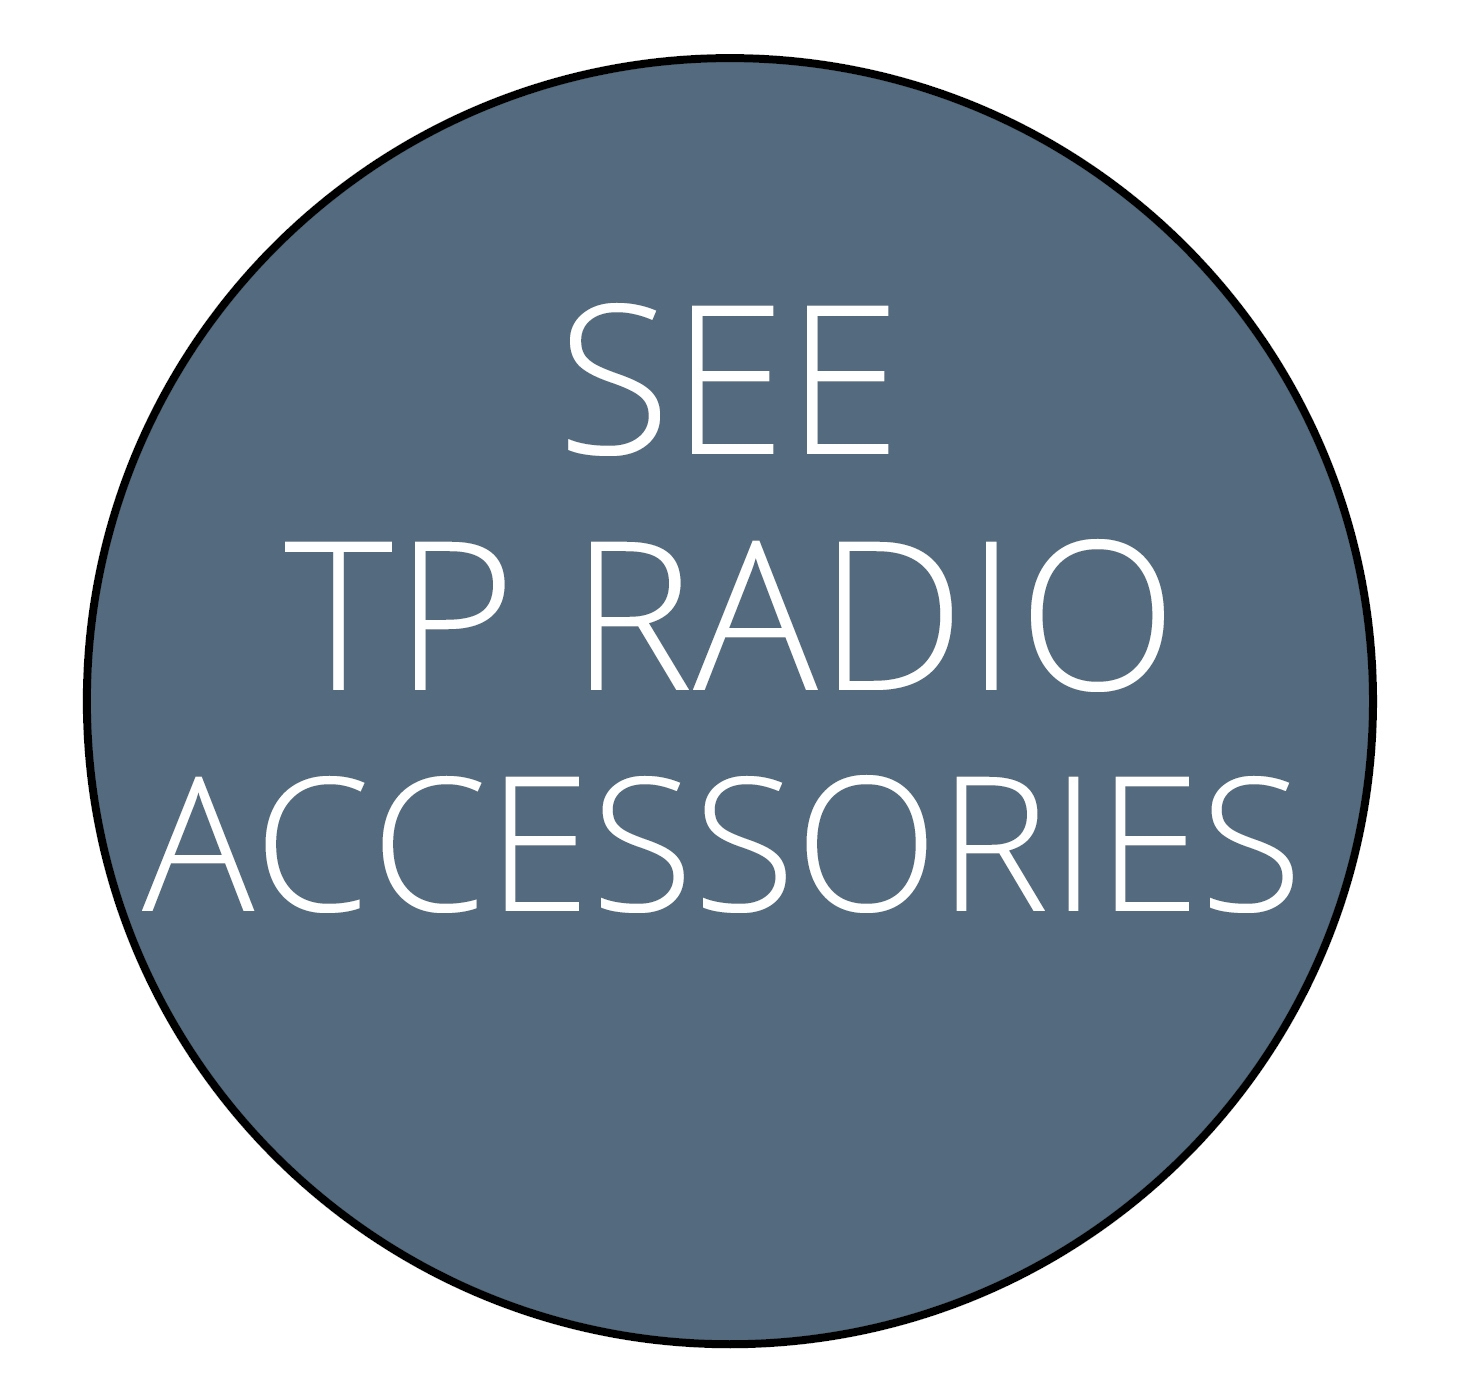 See TP Radio dispatch accessories